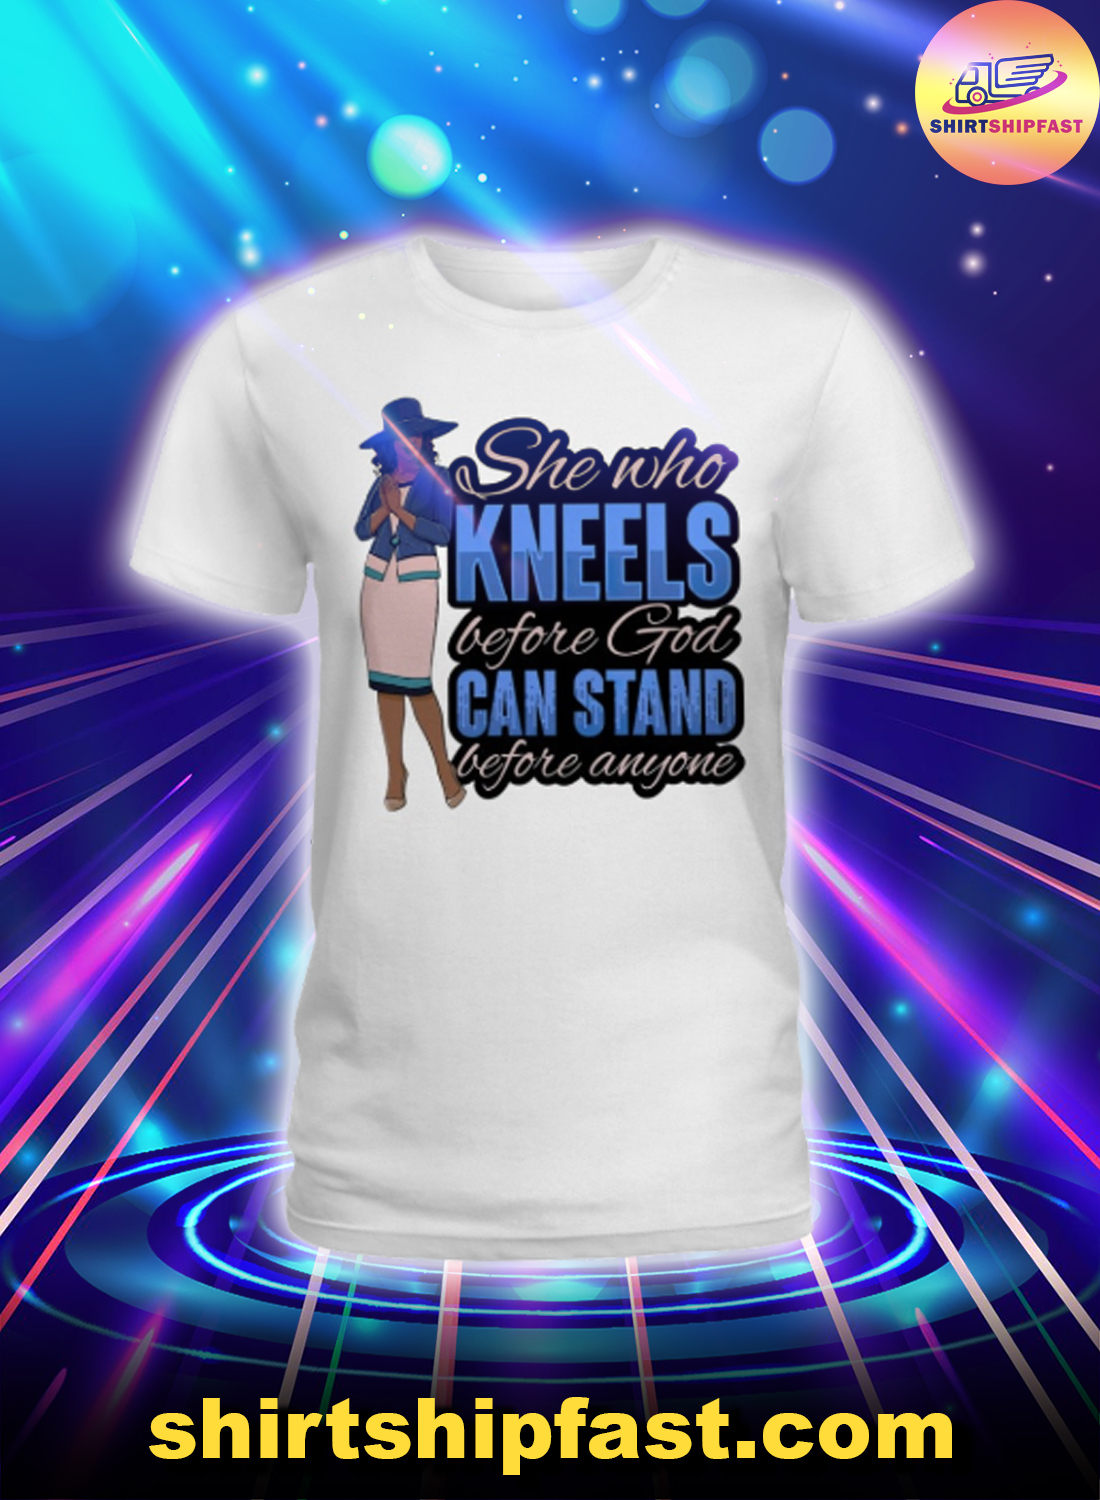 Black girl She who kneels before God can stand before anyone lady shirt